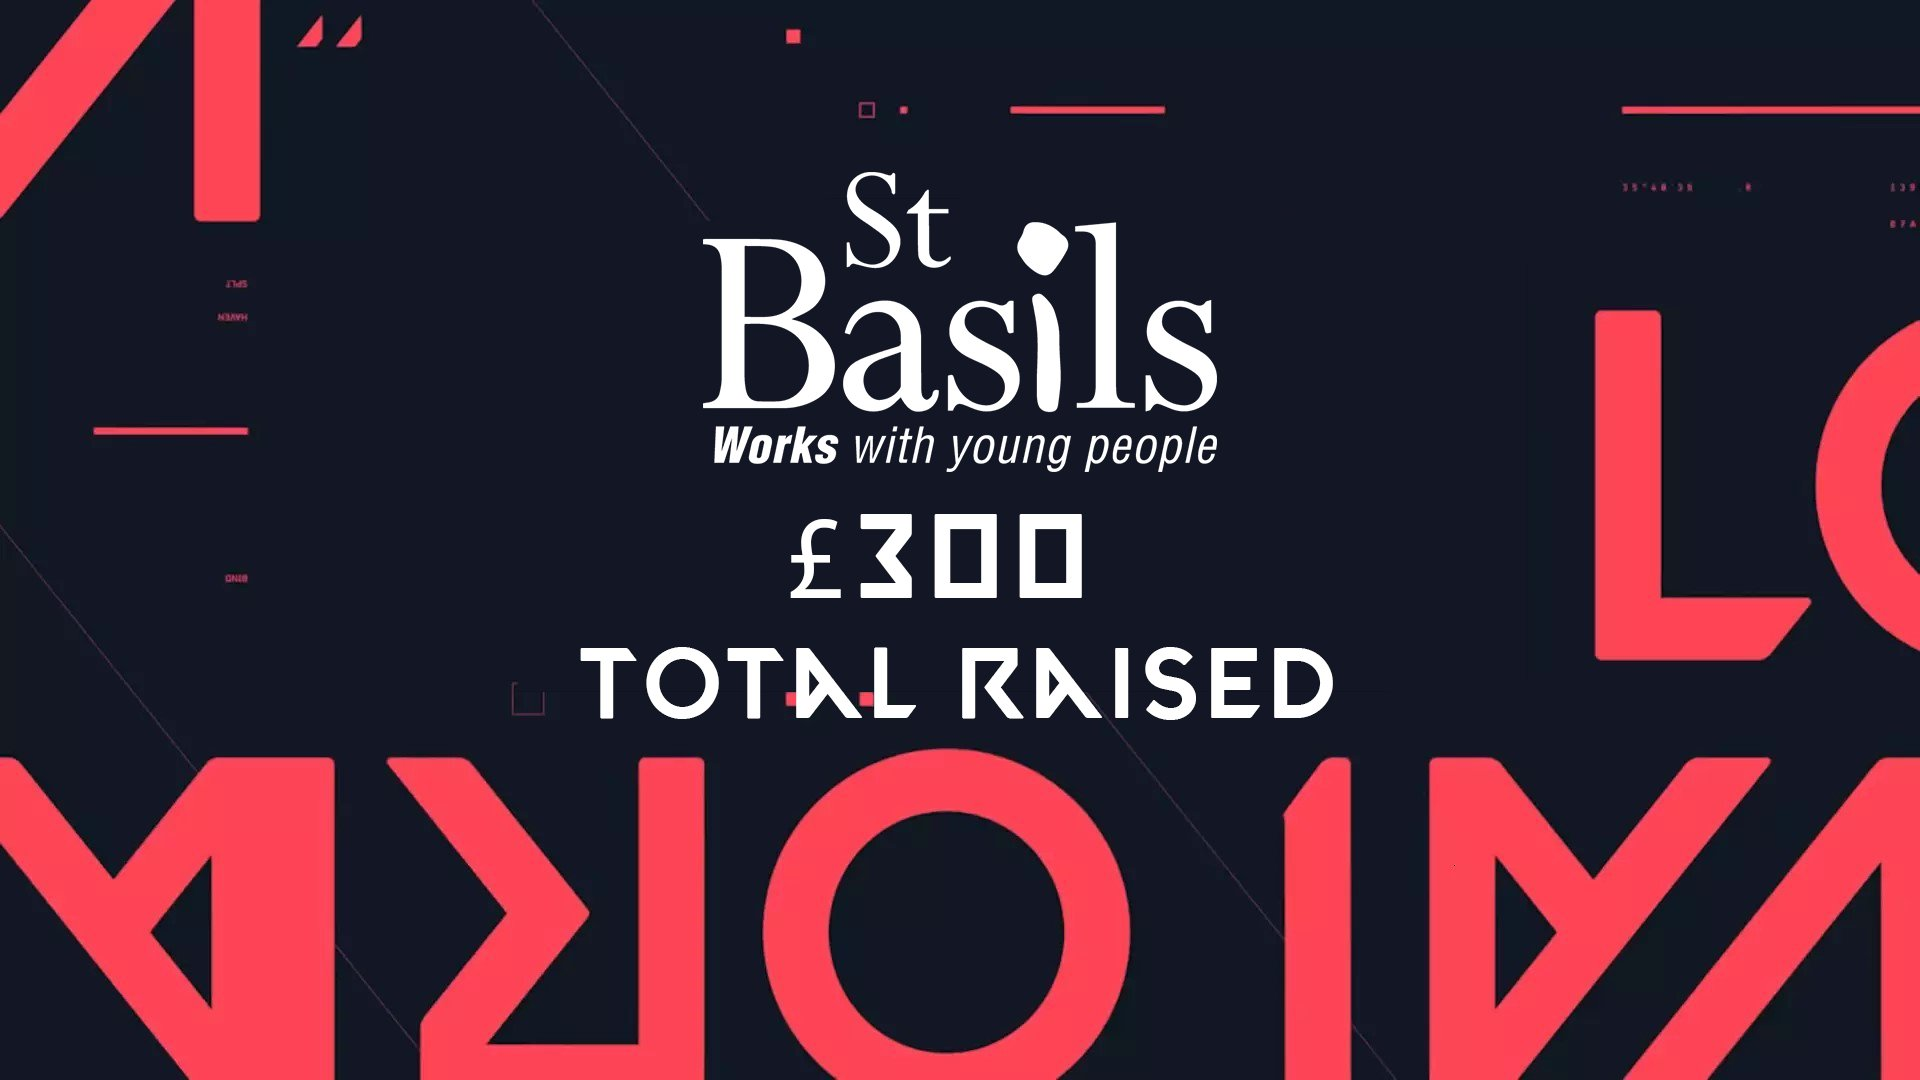 Collegiate Charity Cup raises £300 for St Basils